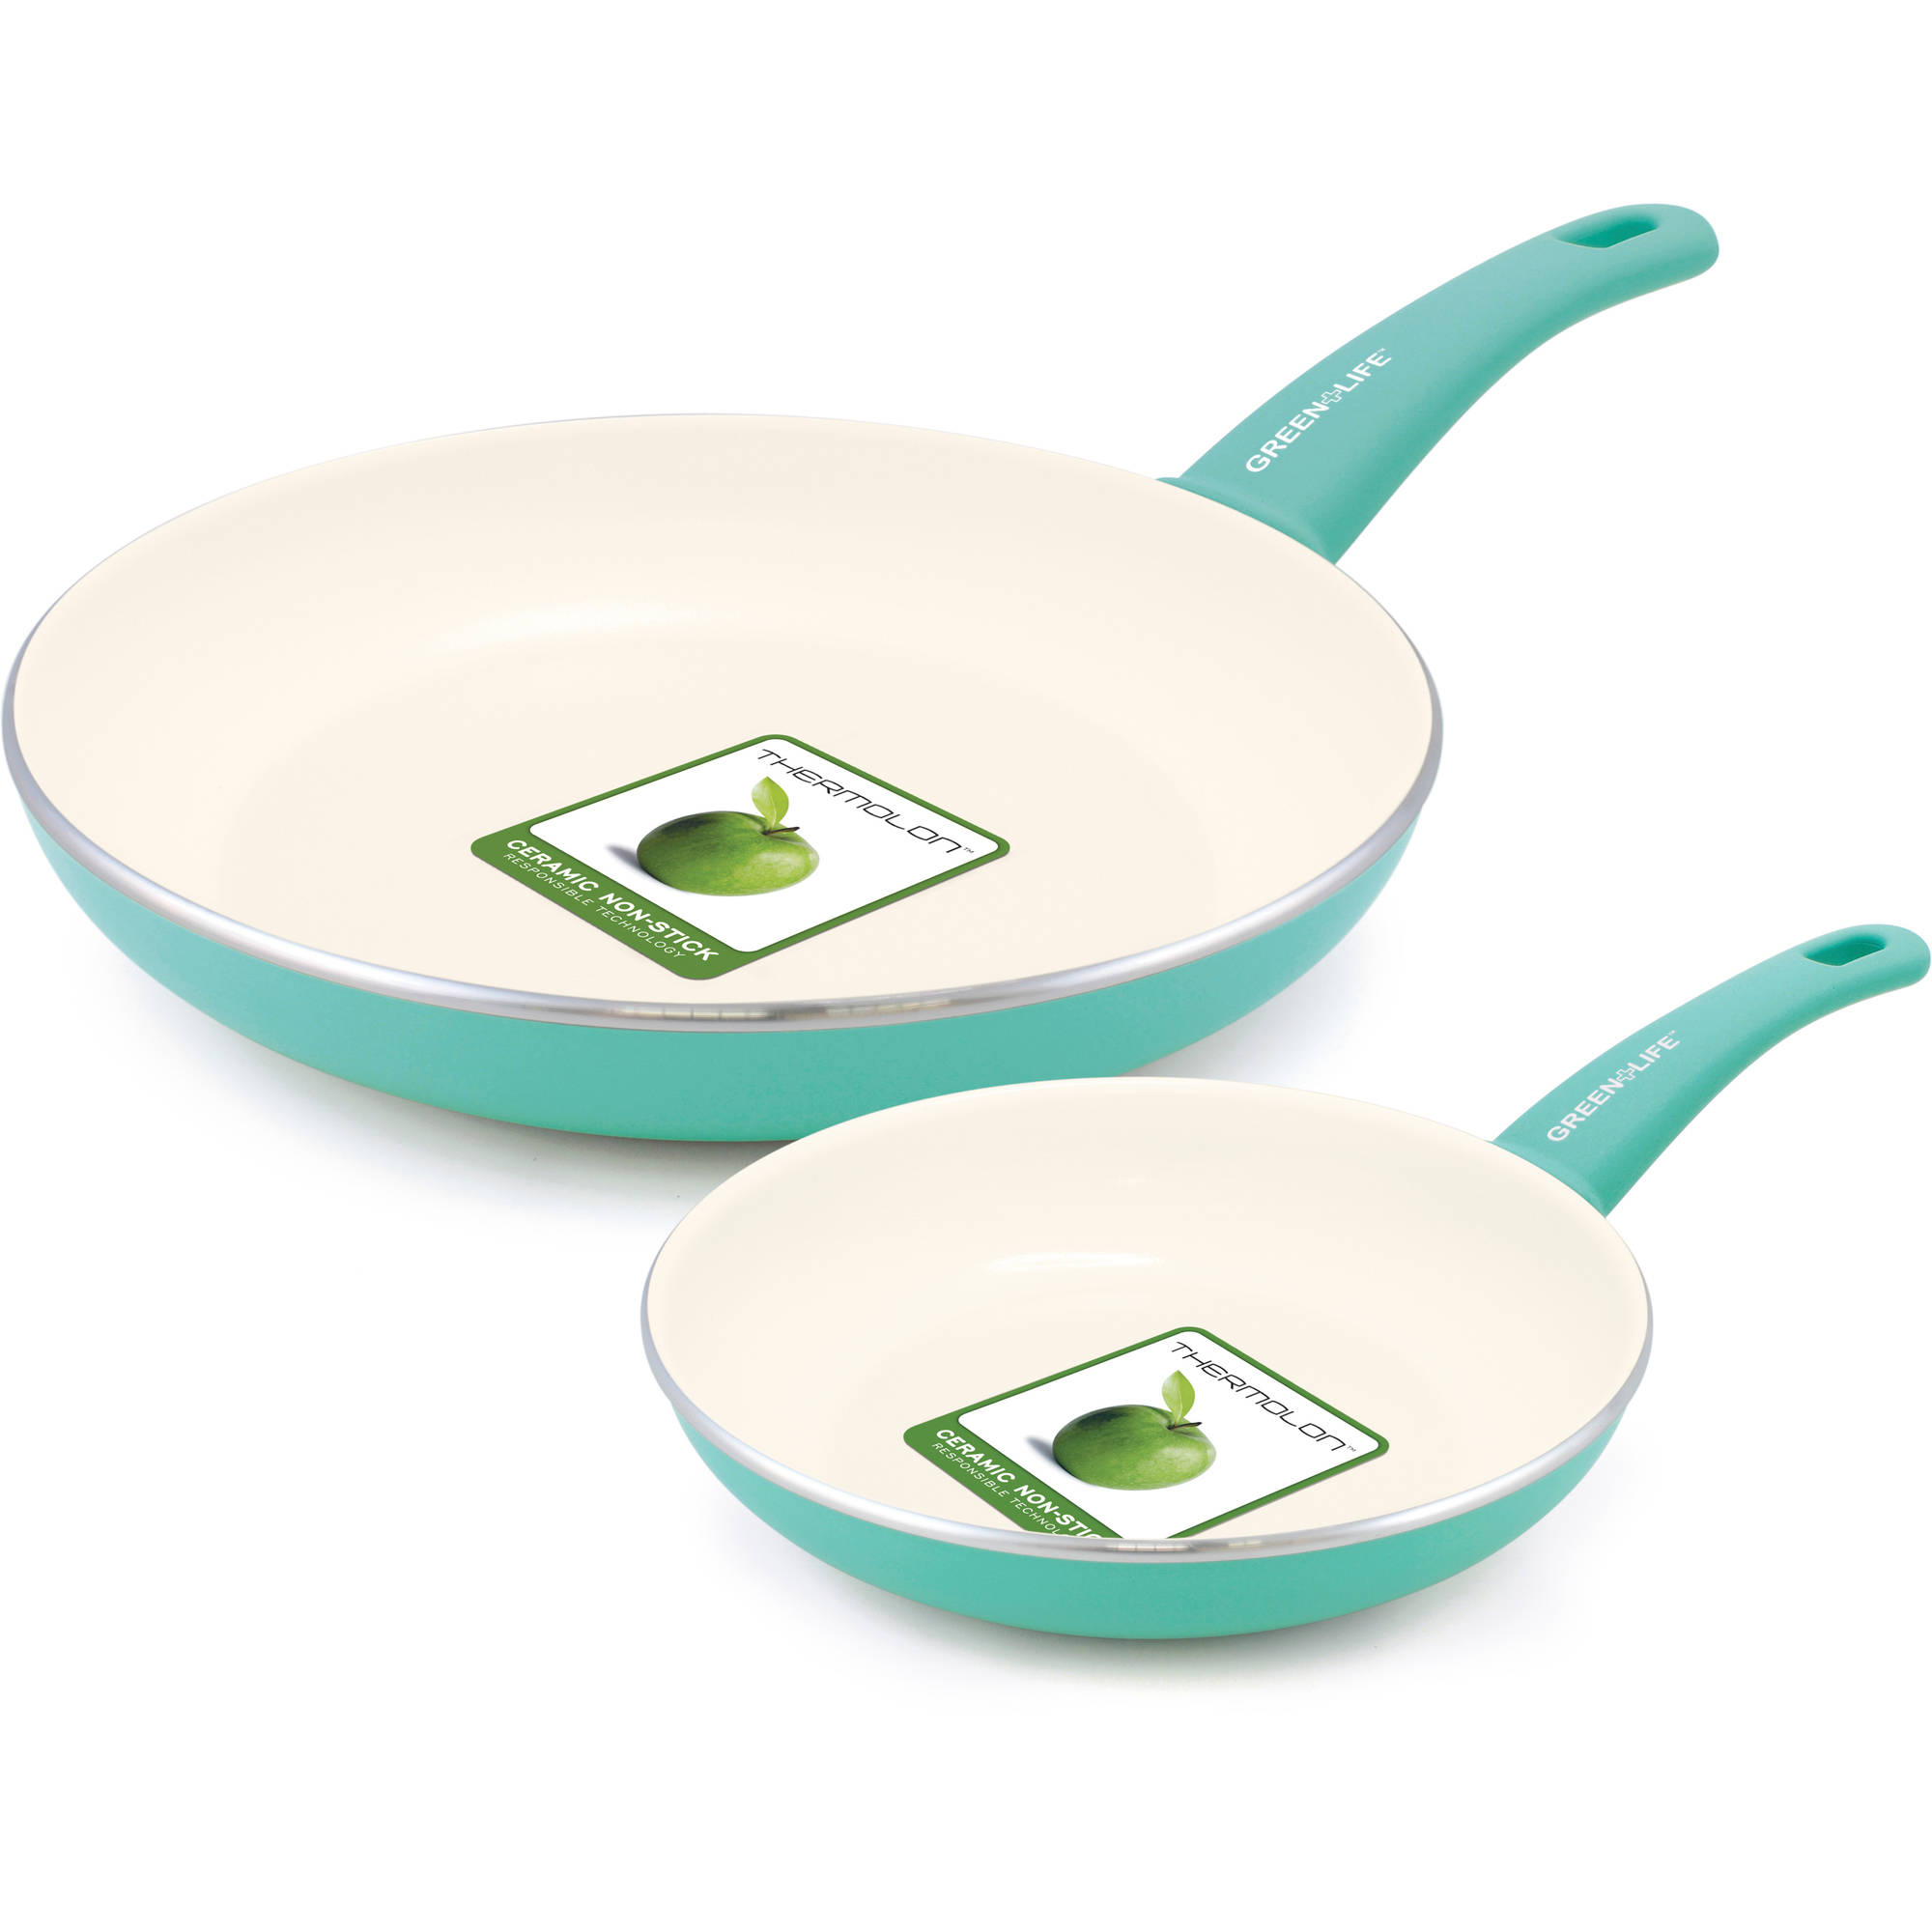 GreenLife Healthy Ceramic Non-Stick 14-Piece Soft Grip Cookware ...